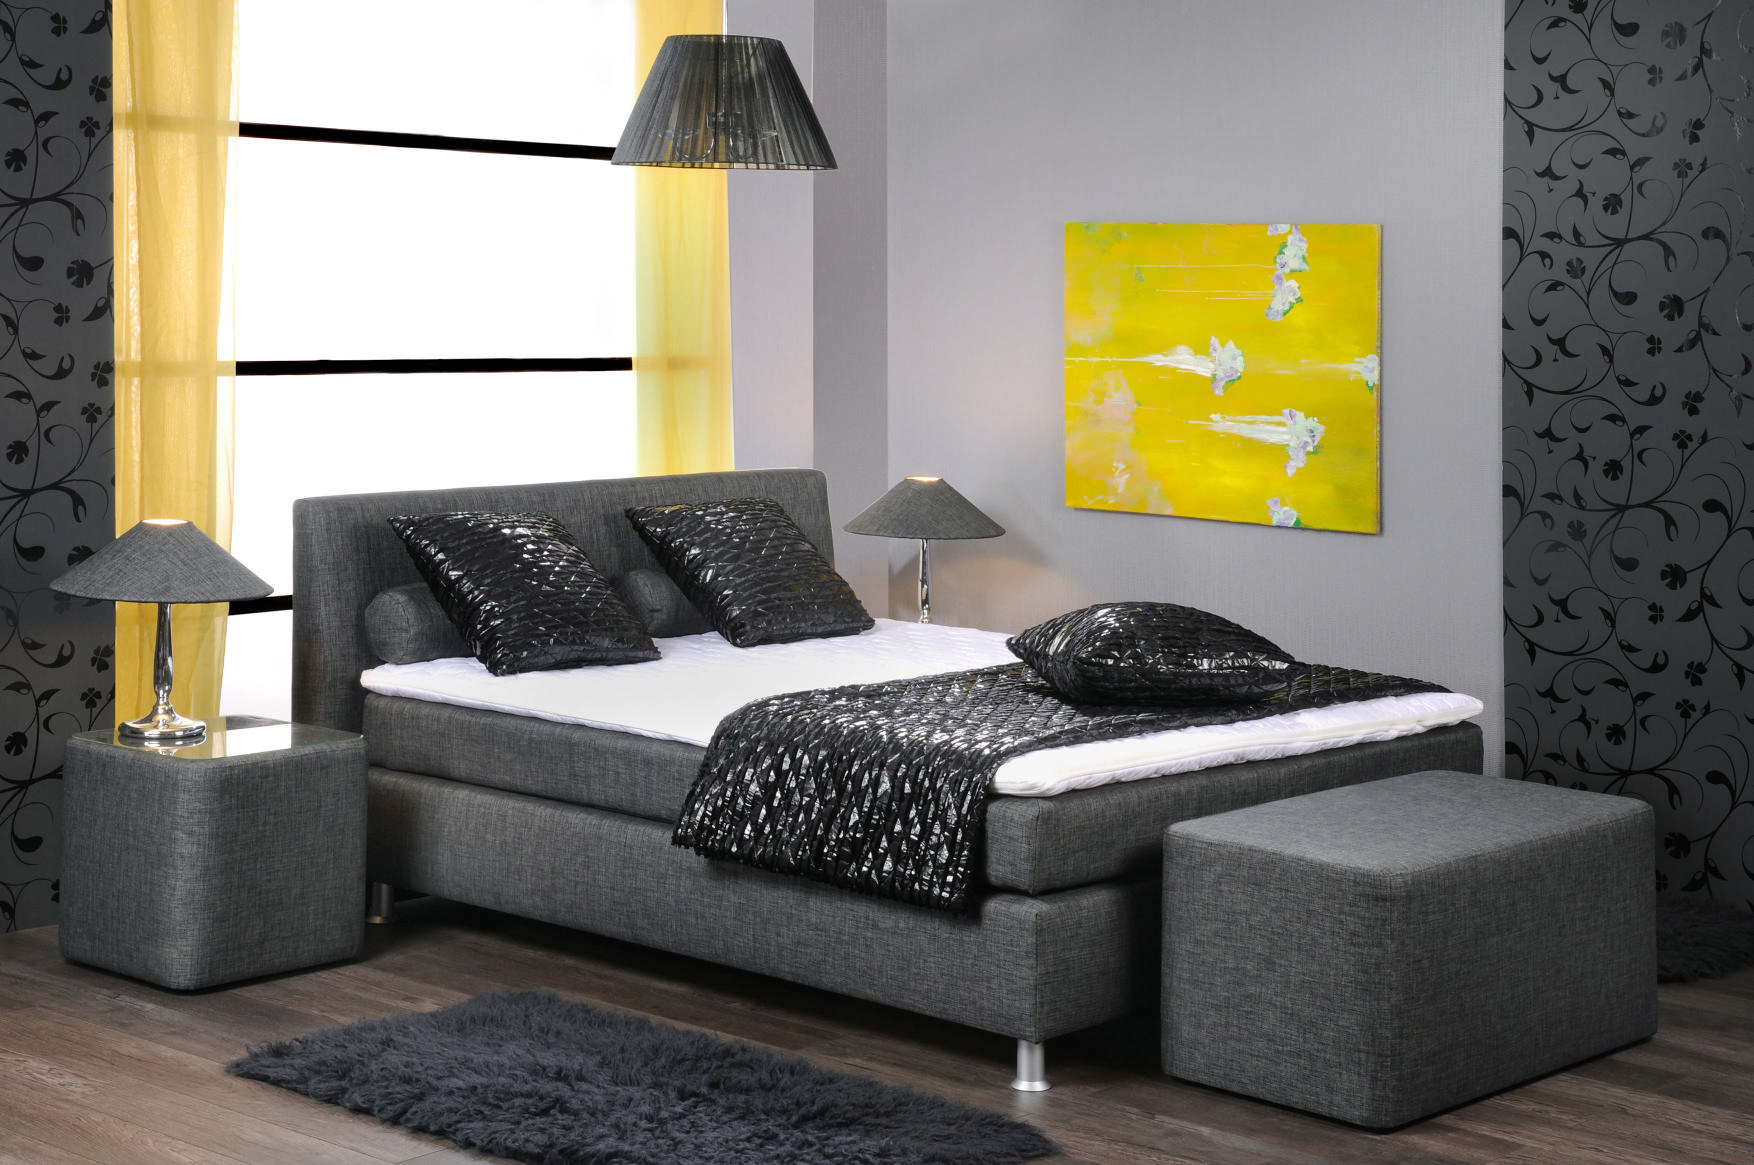 belcanto oschmann boxspring eden luxus betten. Black Bedroom Furniture Sets. Home Design Ideas